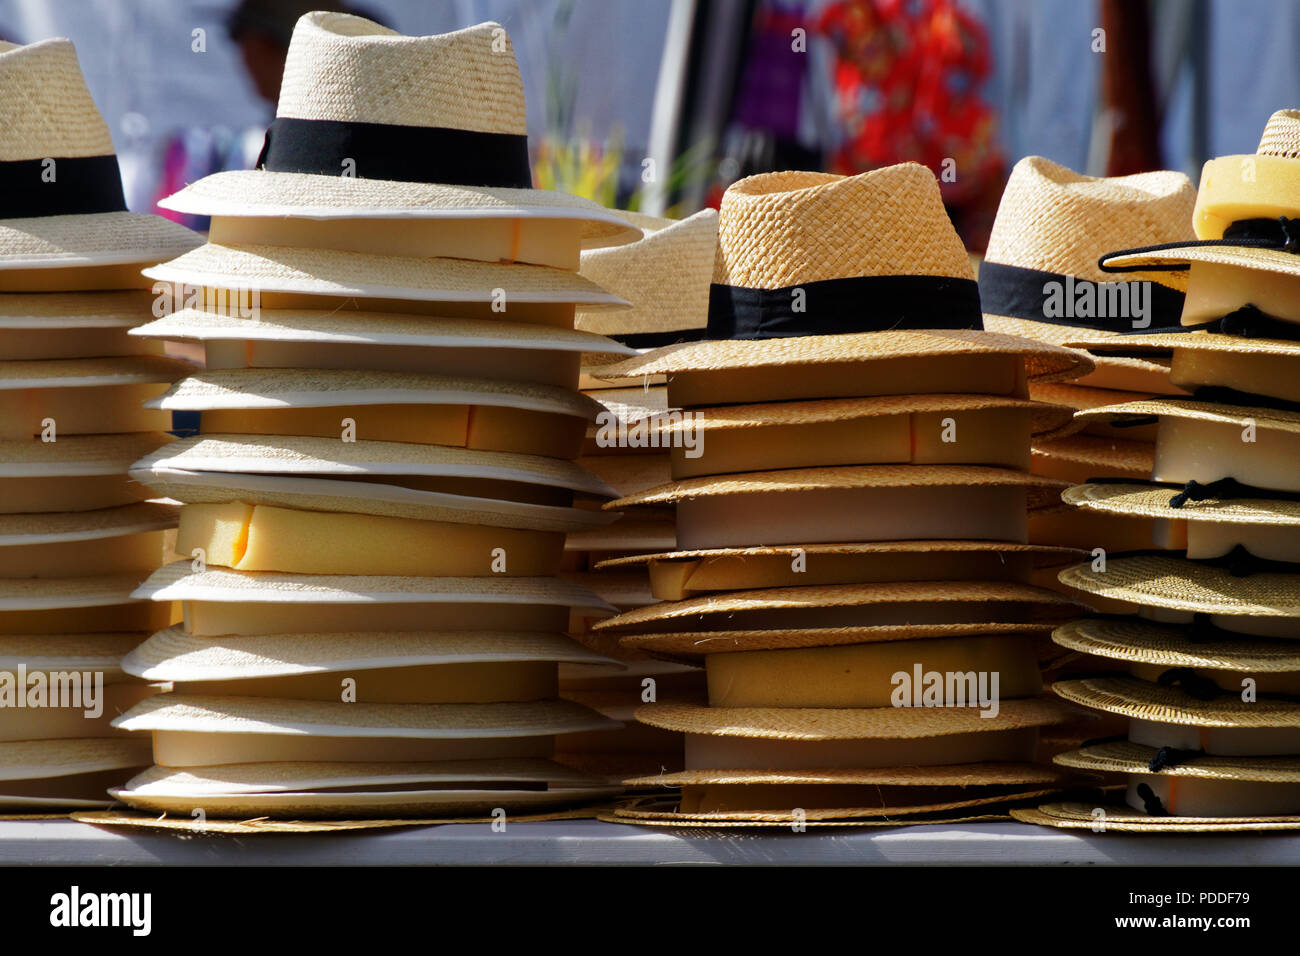 Stacks of straw hats on a market stall on a sunny day - Stock Image